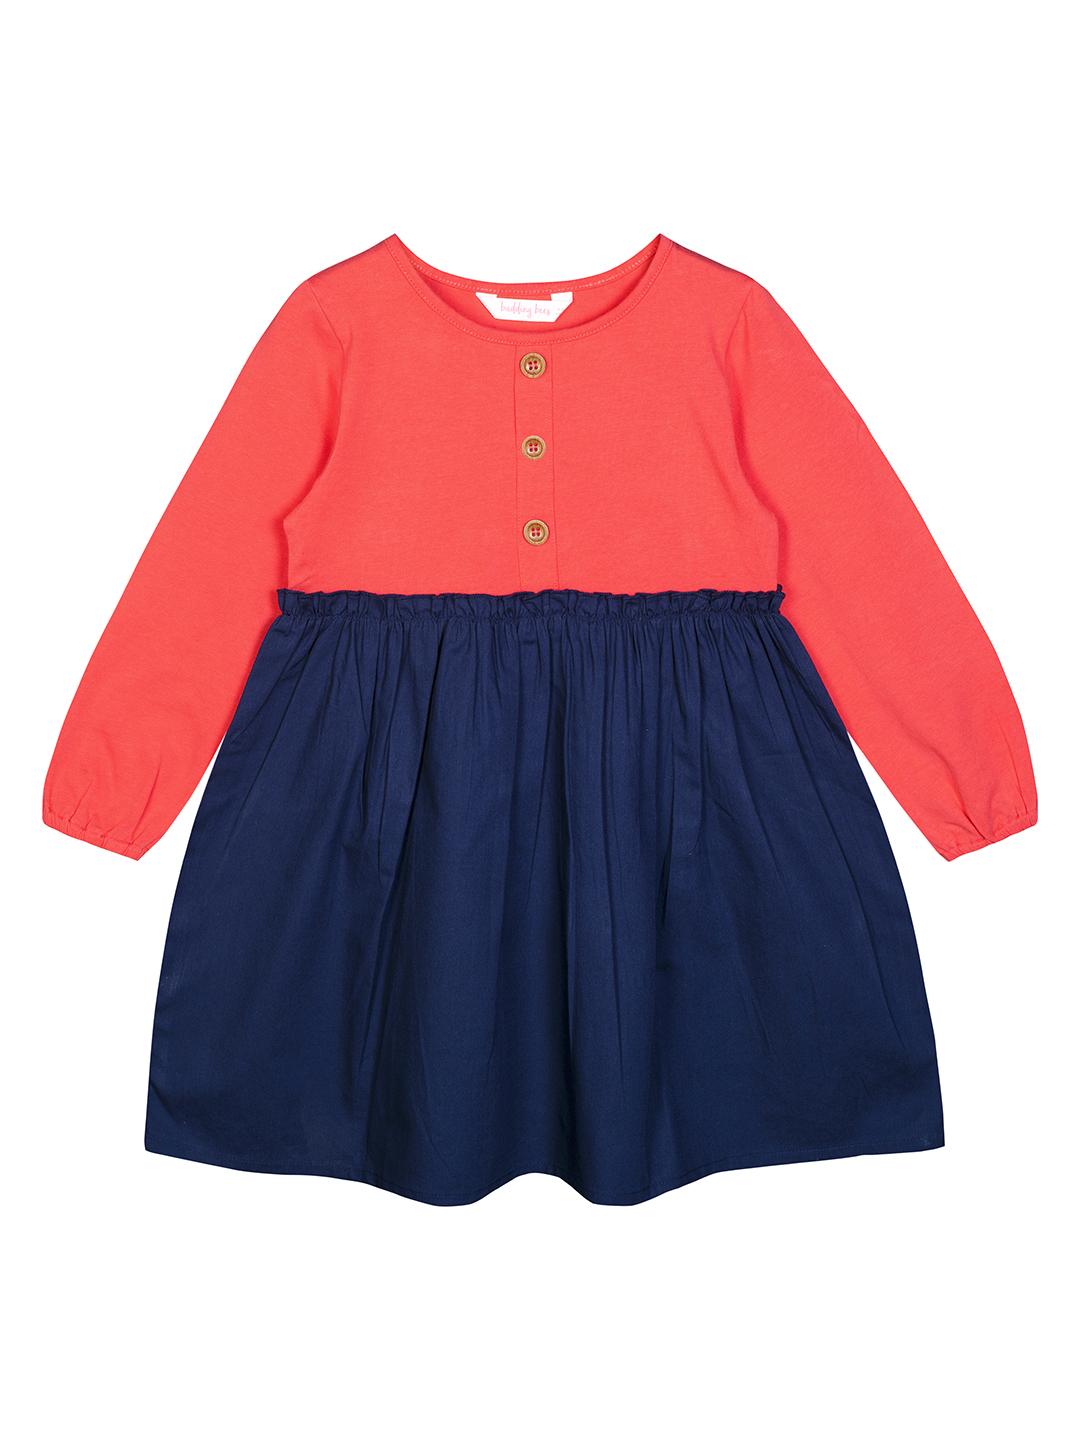 Budding Bees   Budding Bees Girls Red & Blue Solid Dress